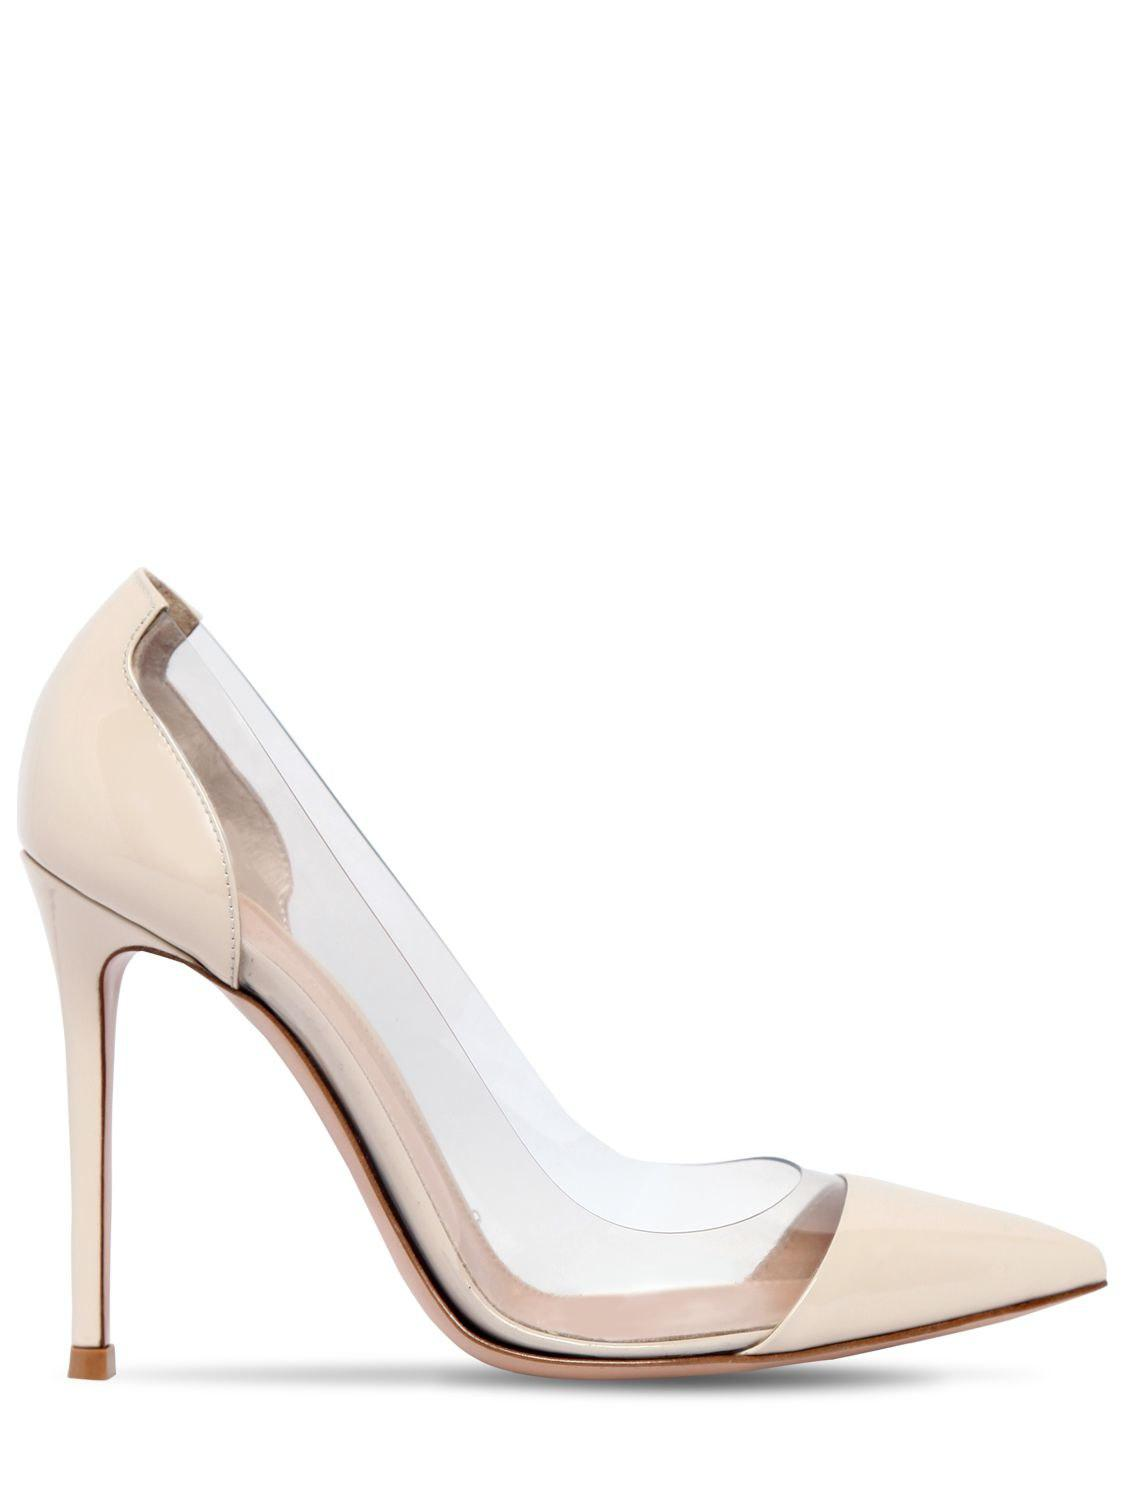 74169f401a44 Lyst - Gianvito Rossi 100mm Plexi   Patent Leather Pumps in Natural